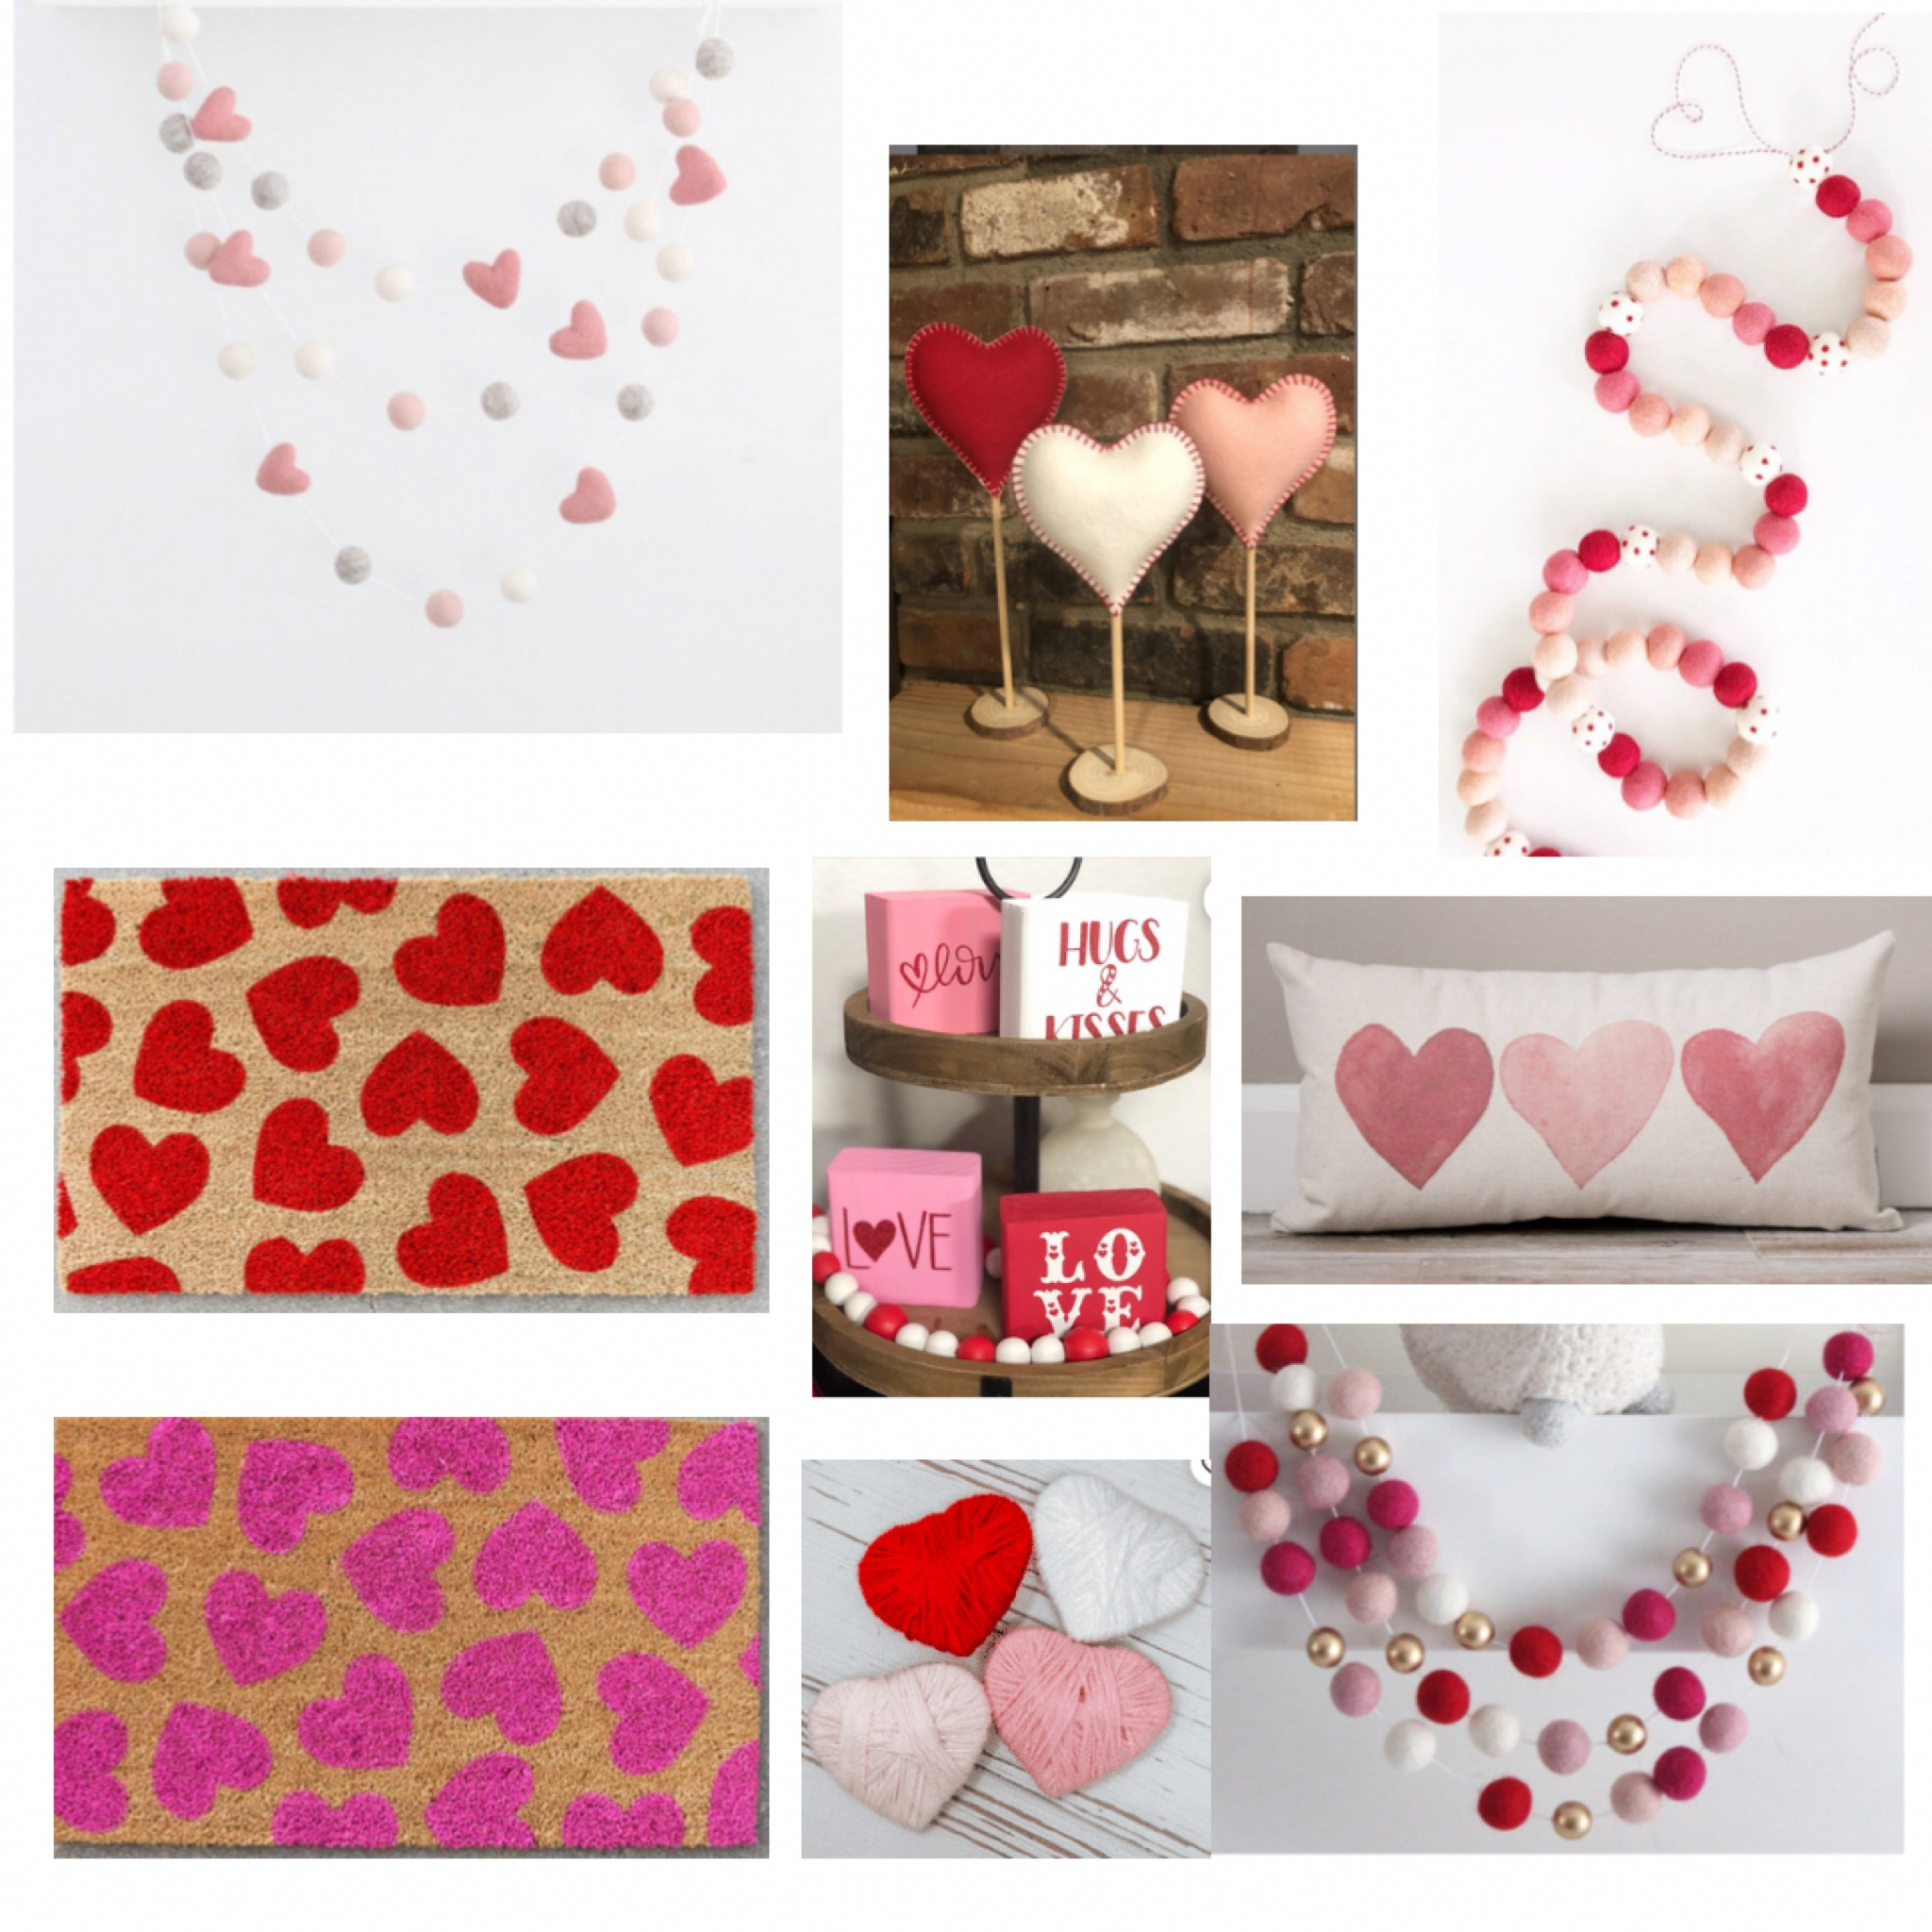 Valentine's Day Decor - Something Delightful Blog #ValentinesDay #ValentineDecor #HomeDecor